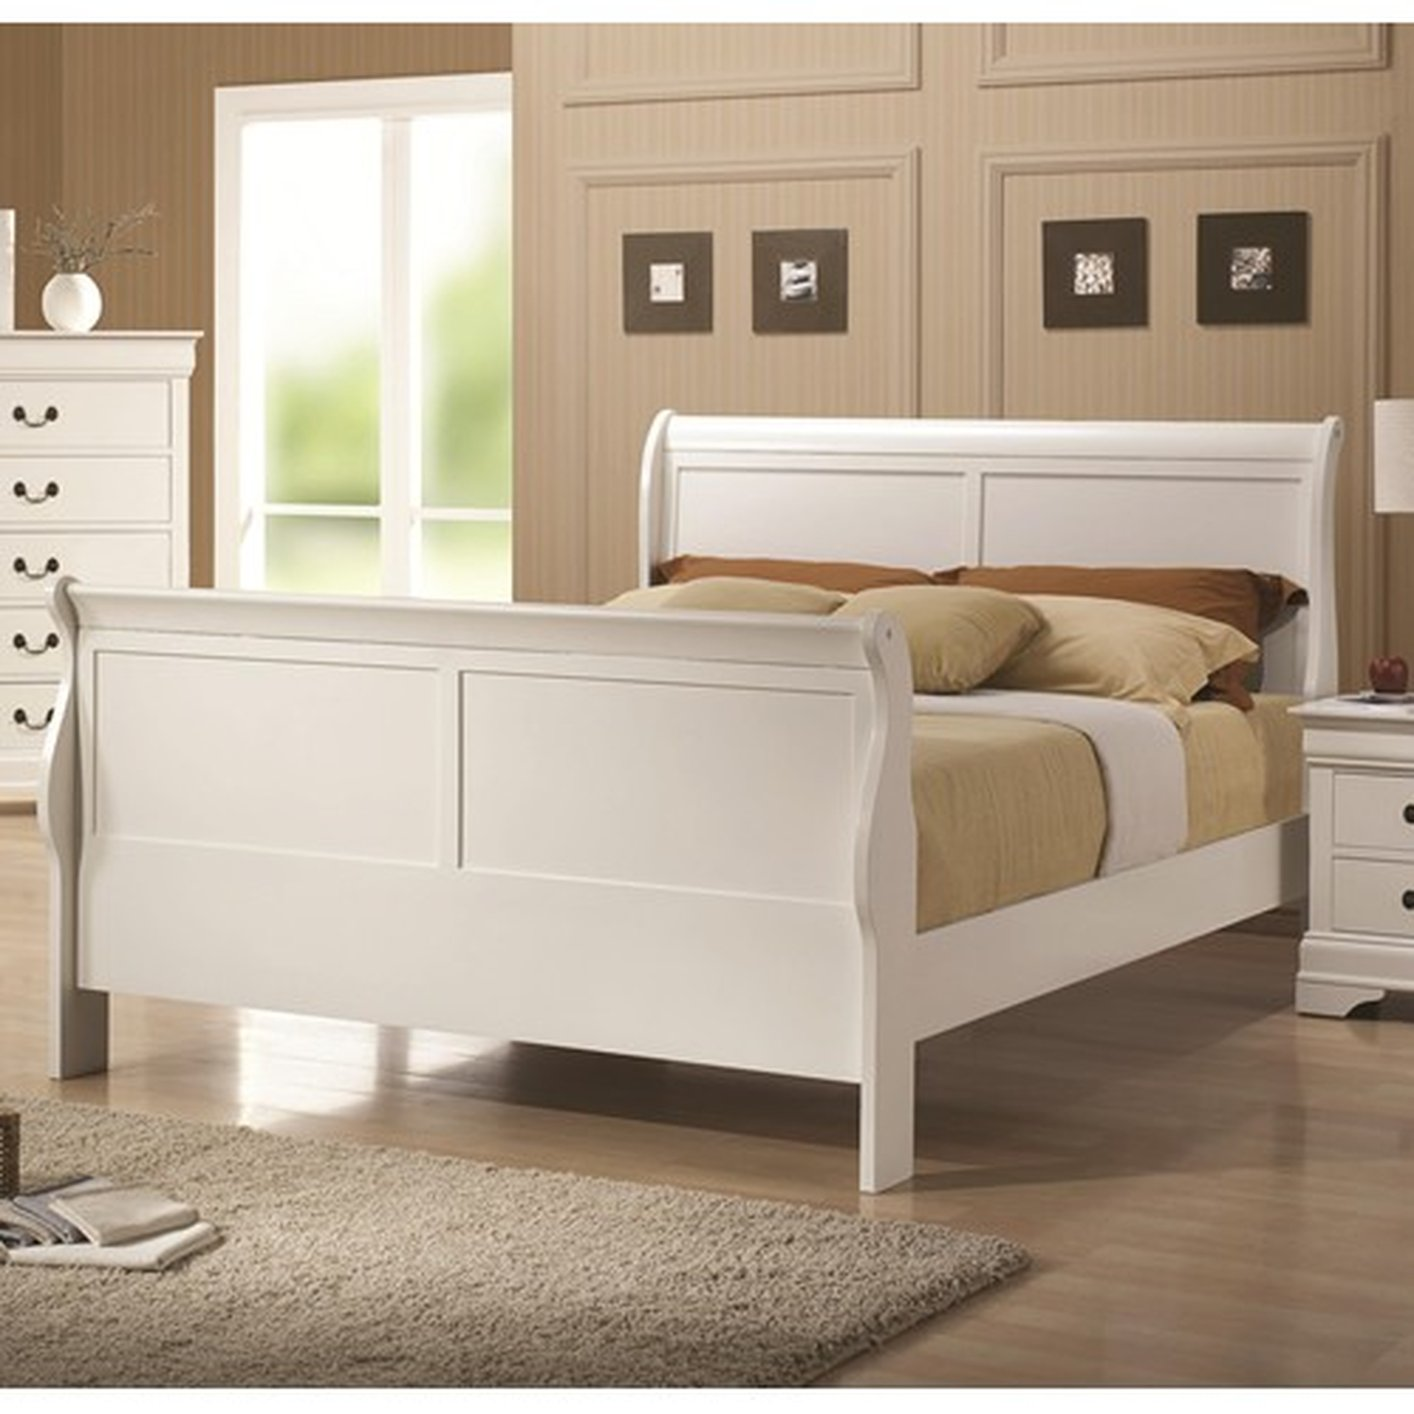 Coaster 204691f White Full Size Wood Bed Steal A Sofa